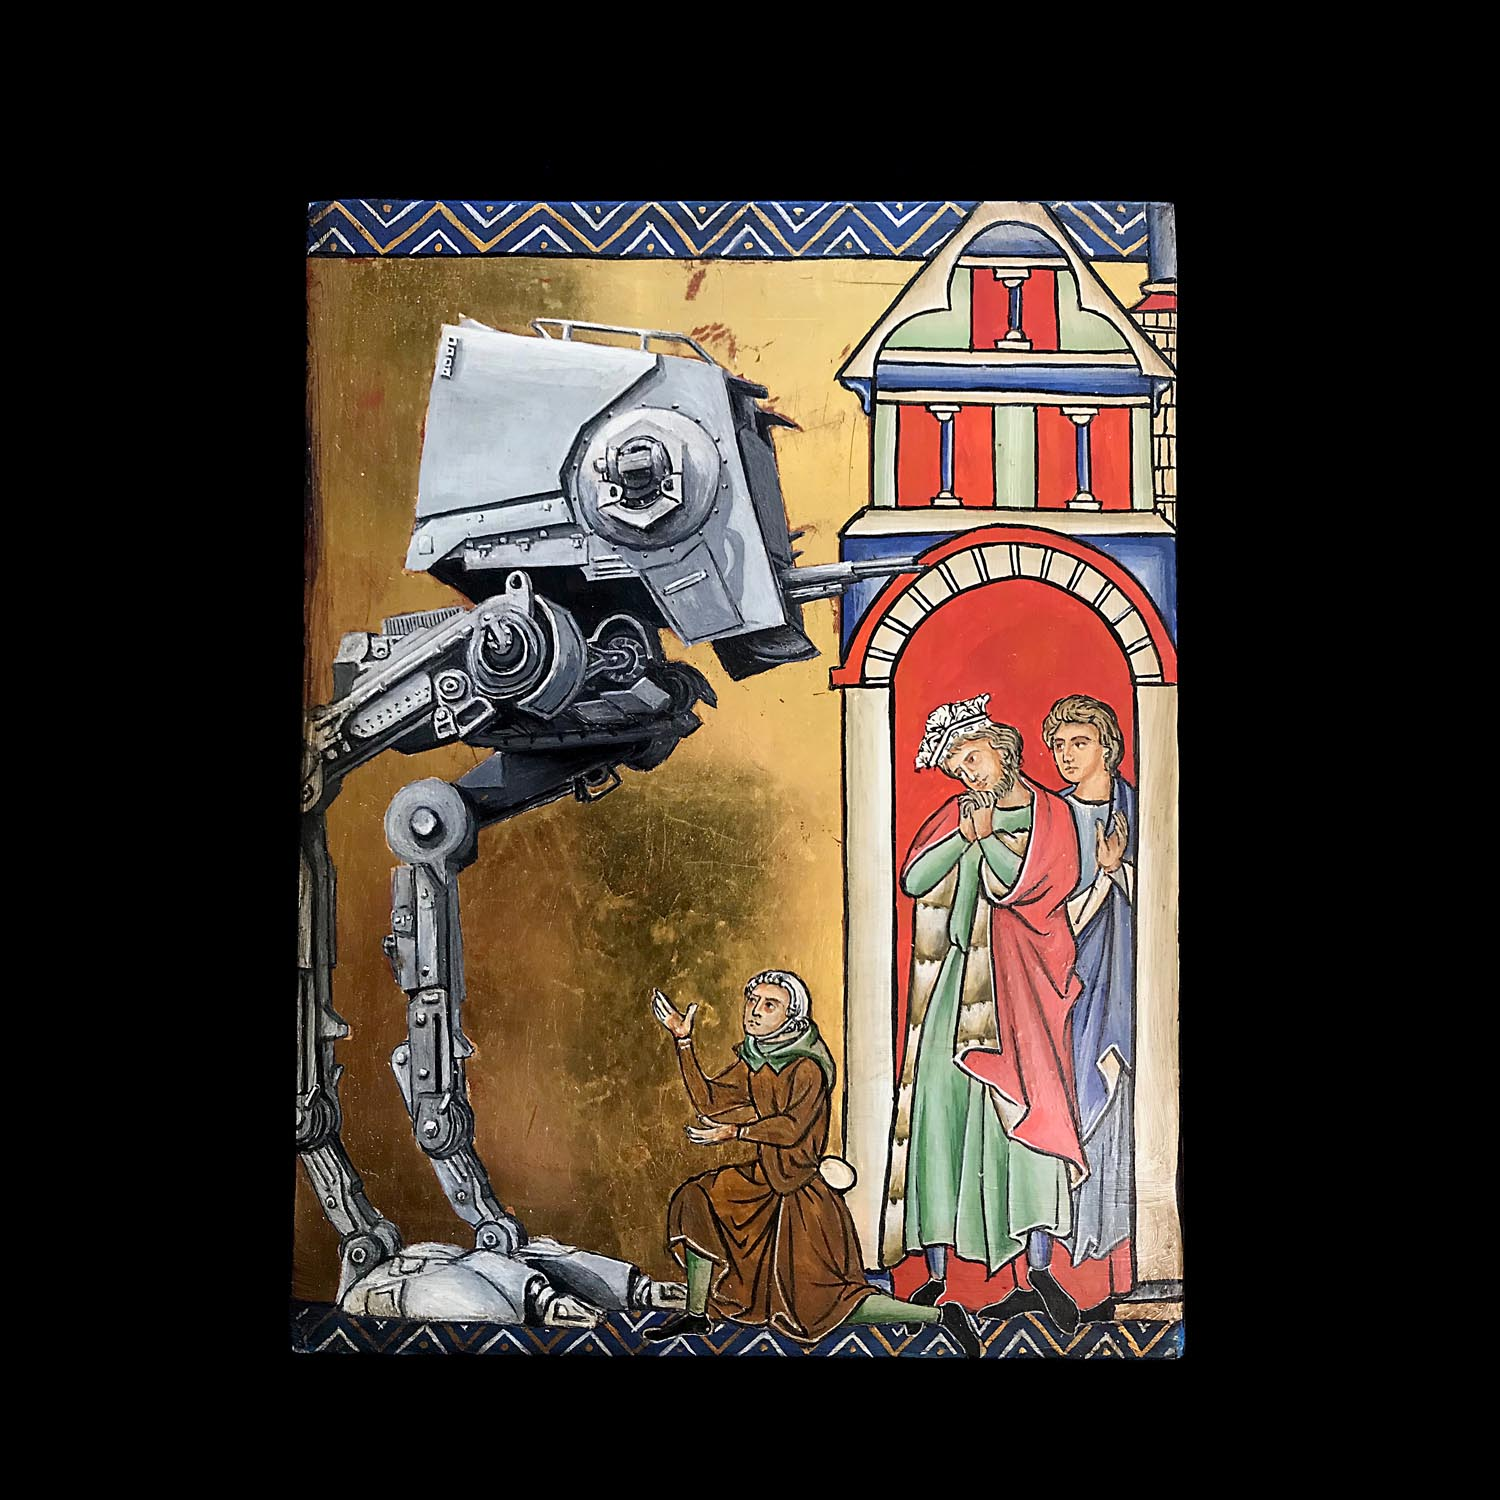 Are you friend or foe? After the Crusader Bible (13th century). By Fernando Safont